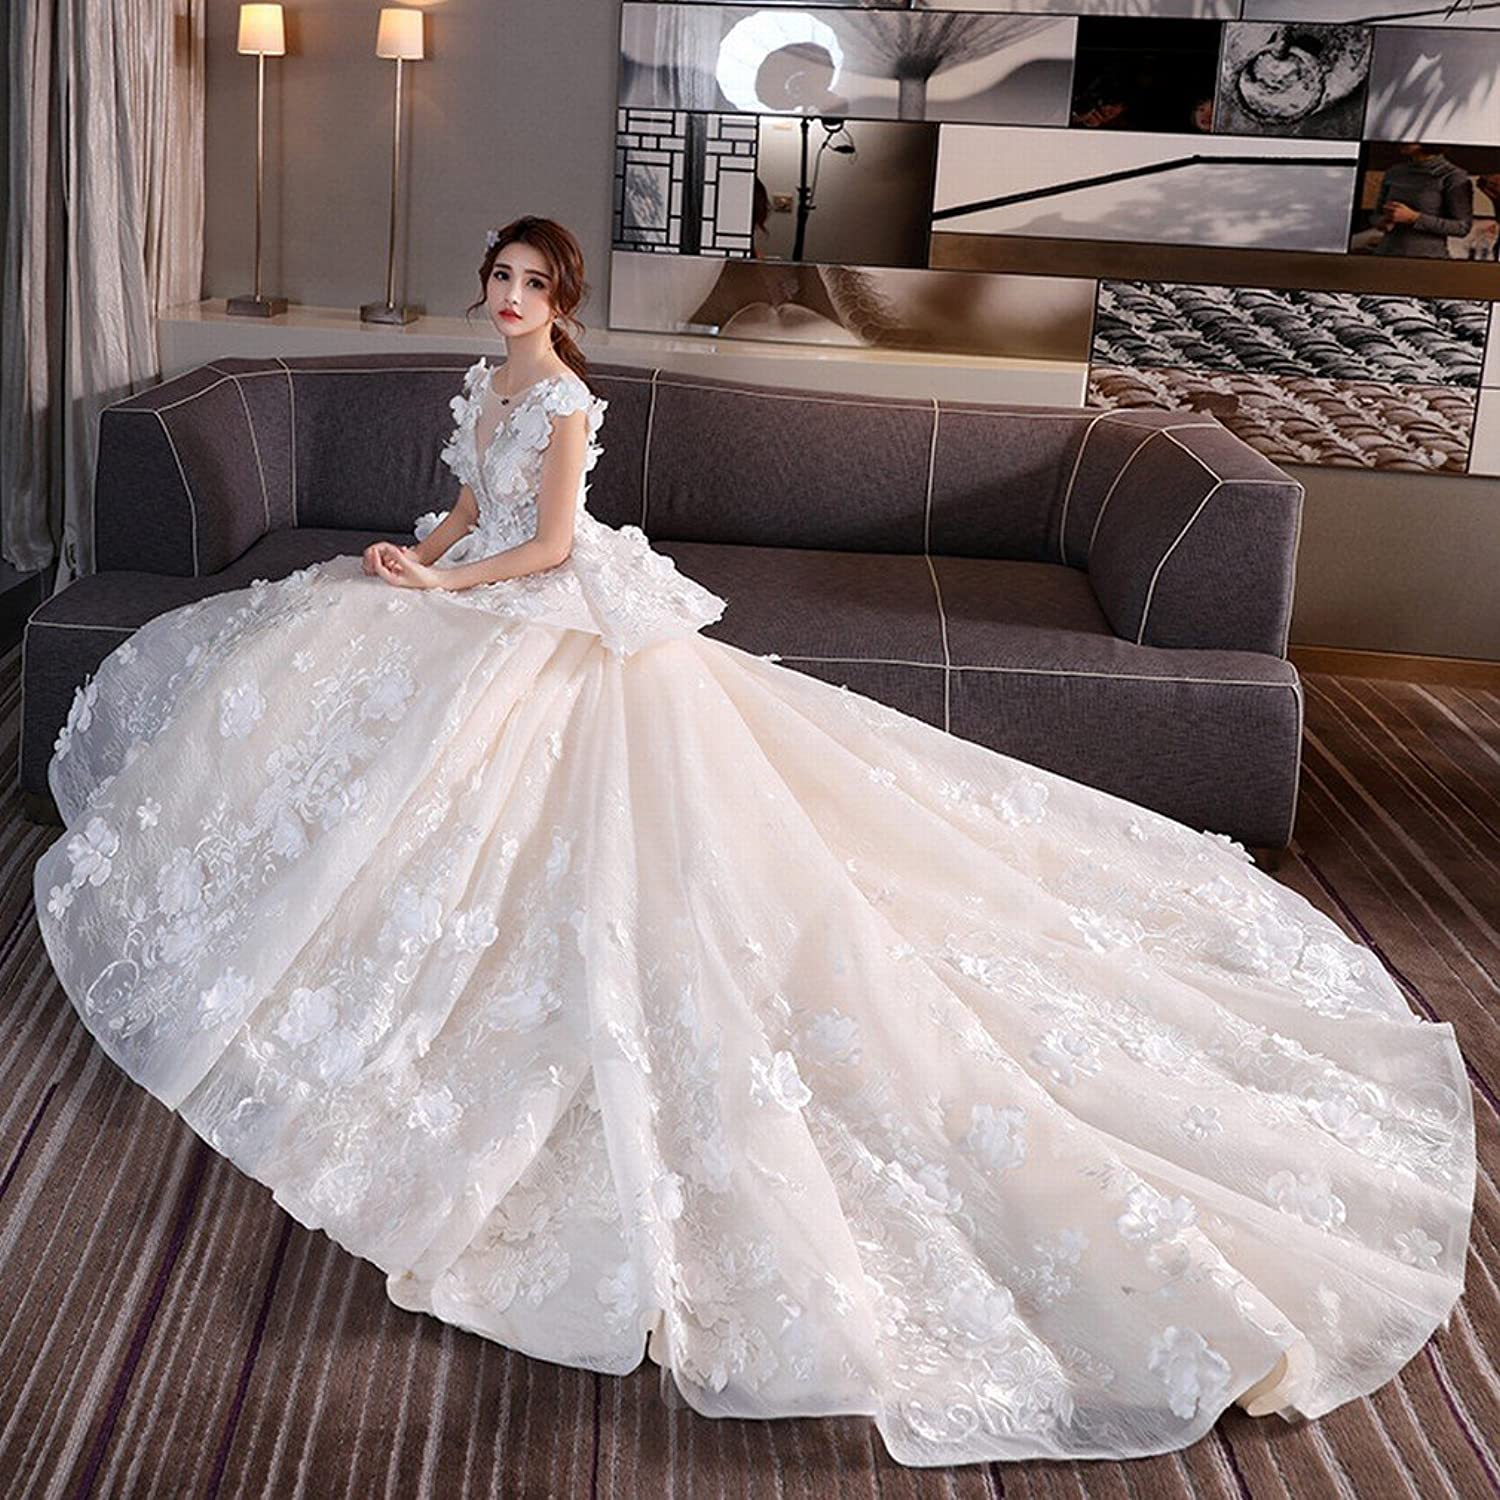 DHG Luxury Palace VNeck Wedding Dress Big Tail Lace Princess Married Bride